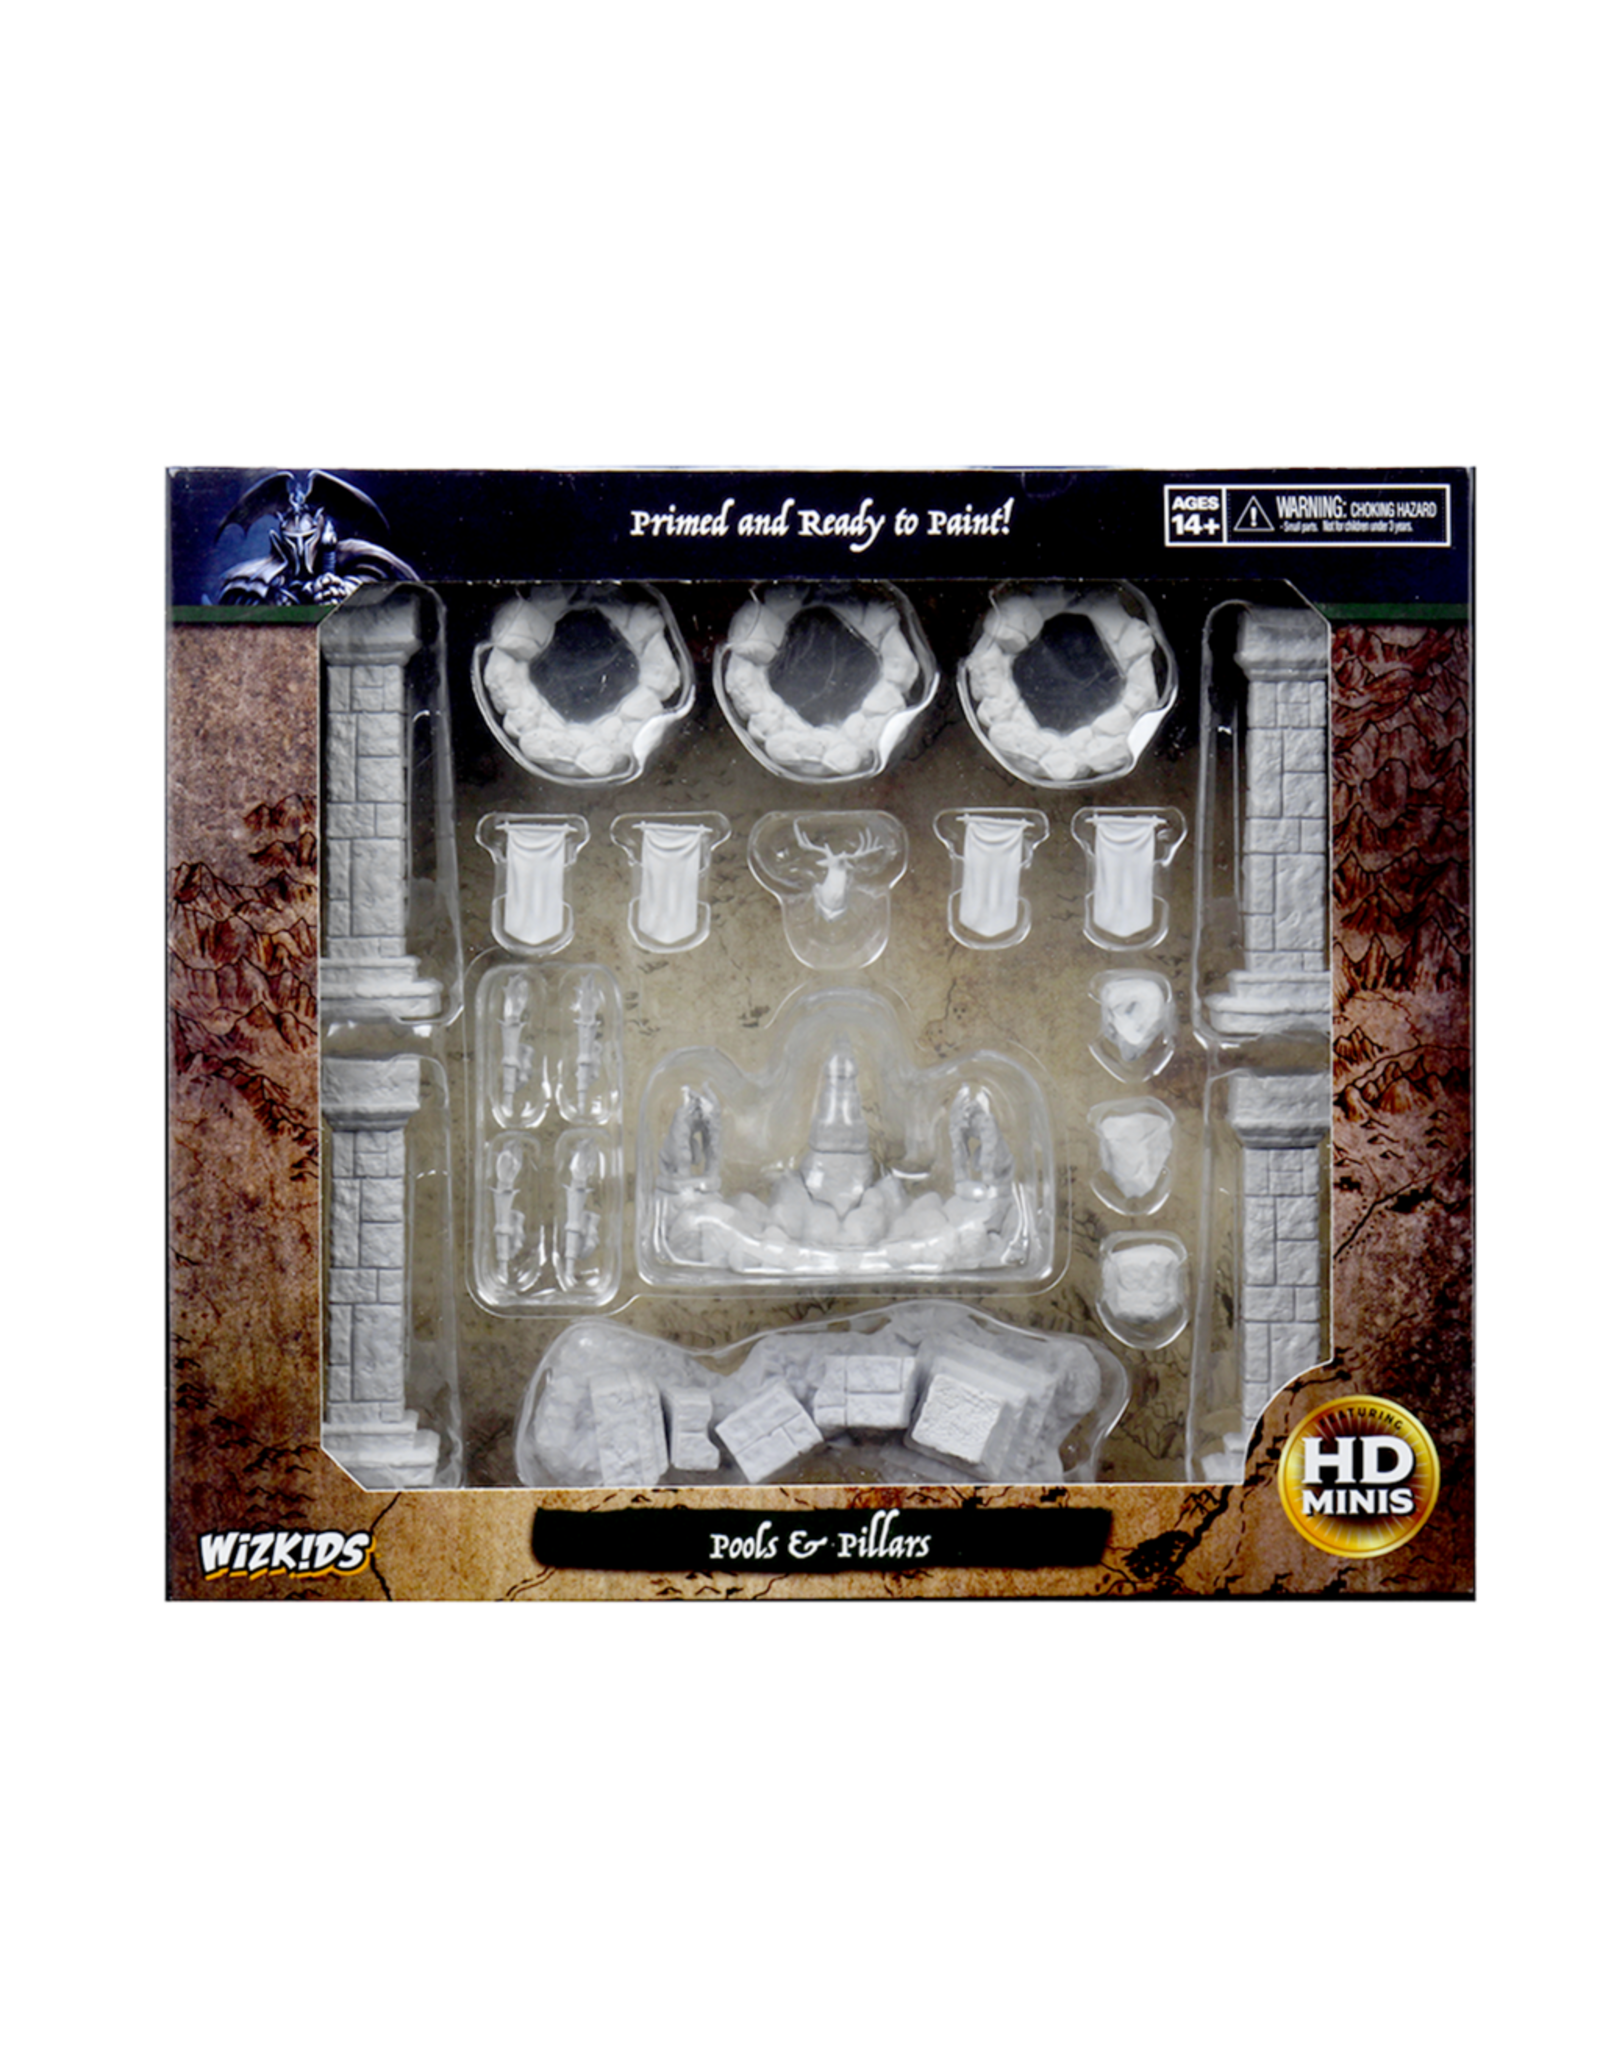 Wizkids Unpainted Miniatures: Pools & Pillars